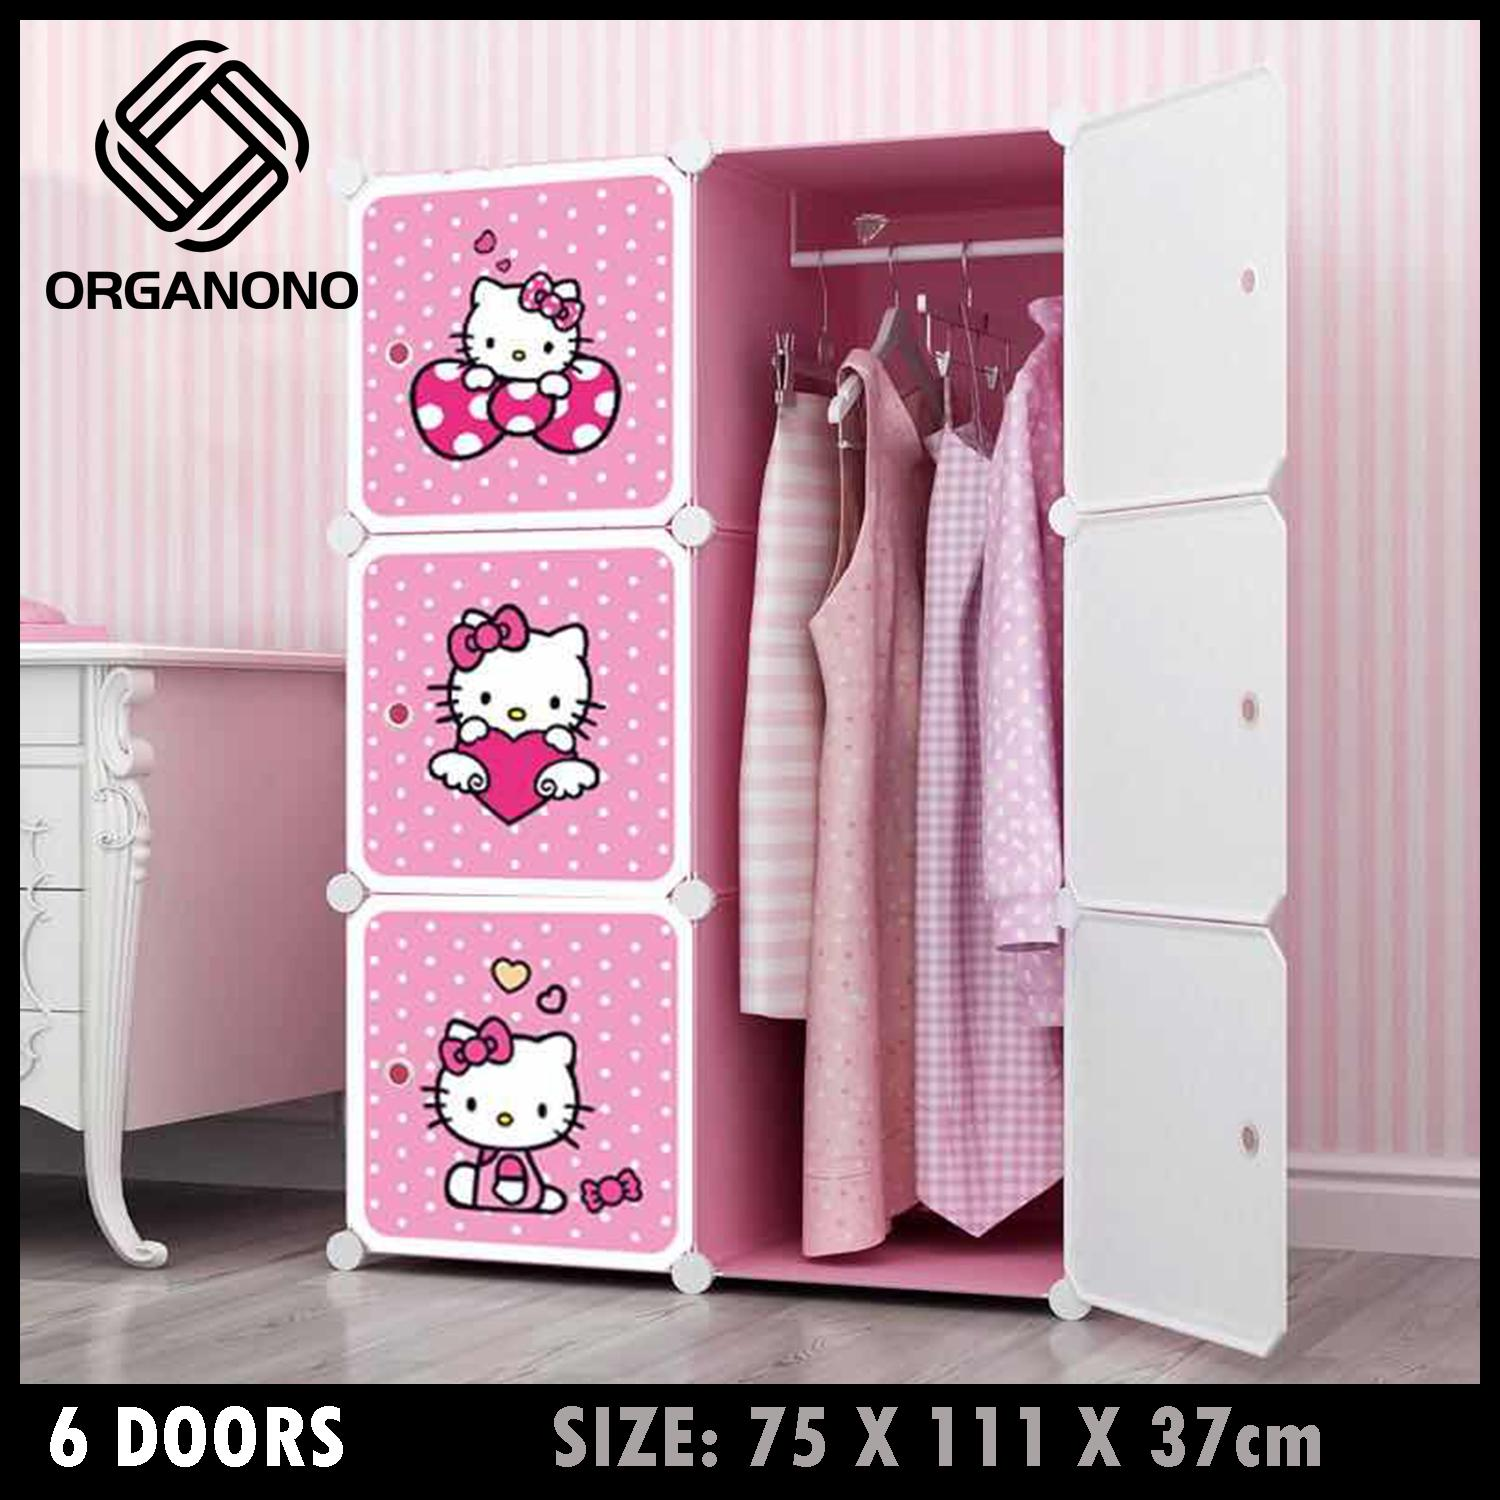 7fb7c433d Organono Screwless Kitty Multipurpose 6 Doors cubes DIY Clothes Storage  Dress Cabinet Wardrobe Room Space Saver